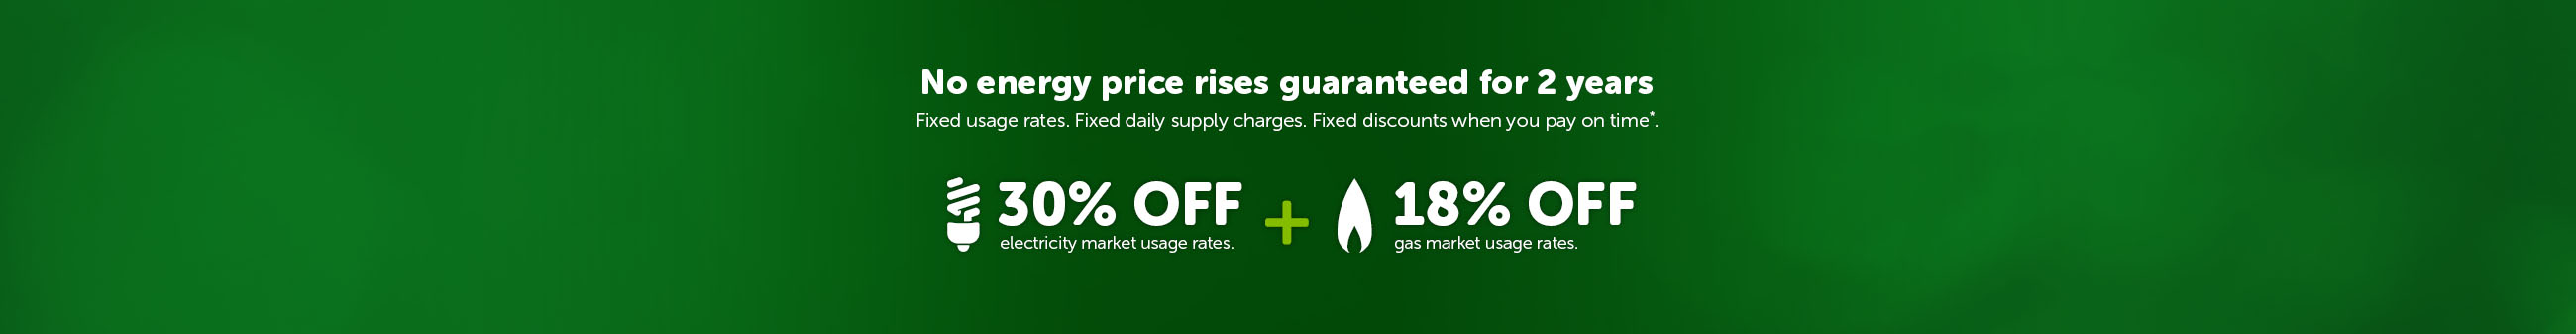 No price rises guaranteed for 2 years. Fixed usage rates. Fixed daily supply charges. Fixed discounts when you pay on time*. 33% off electricity market usage rates. 20% off gas market usage rates.